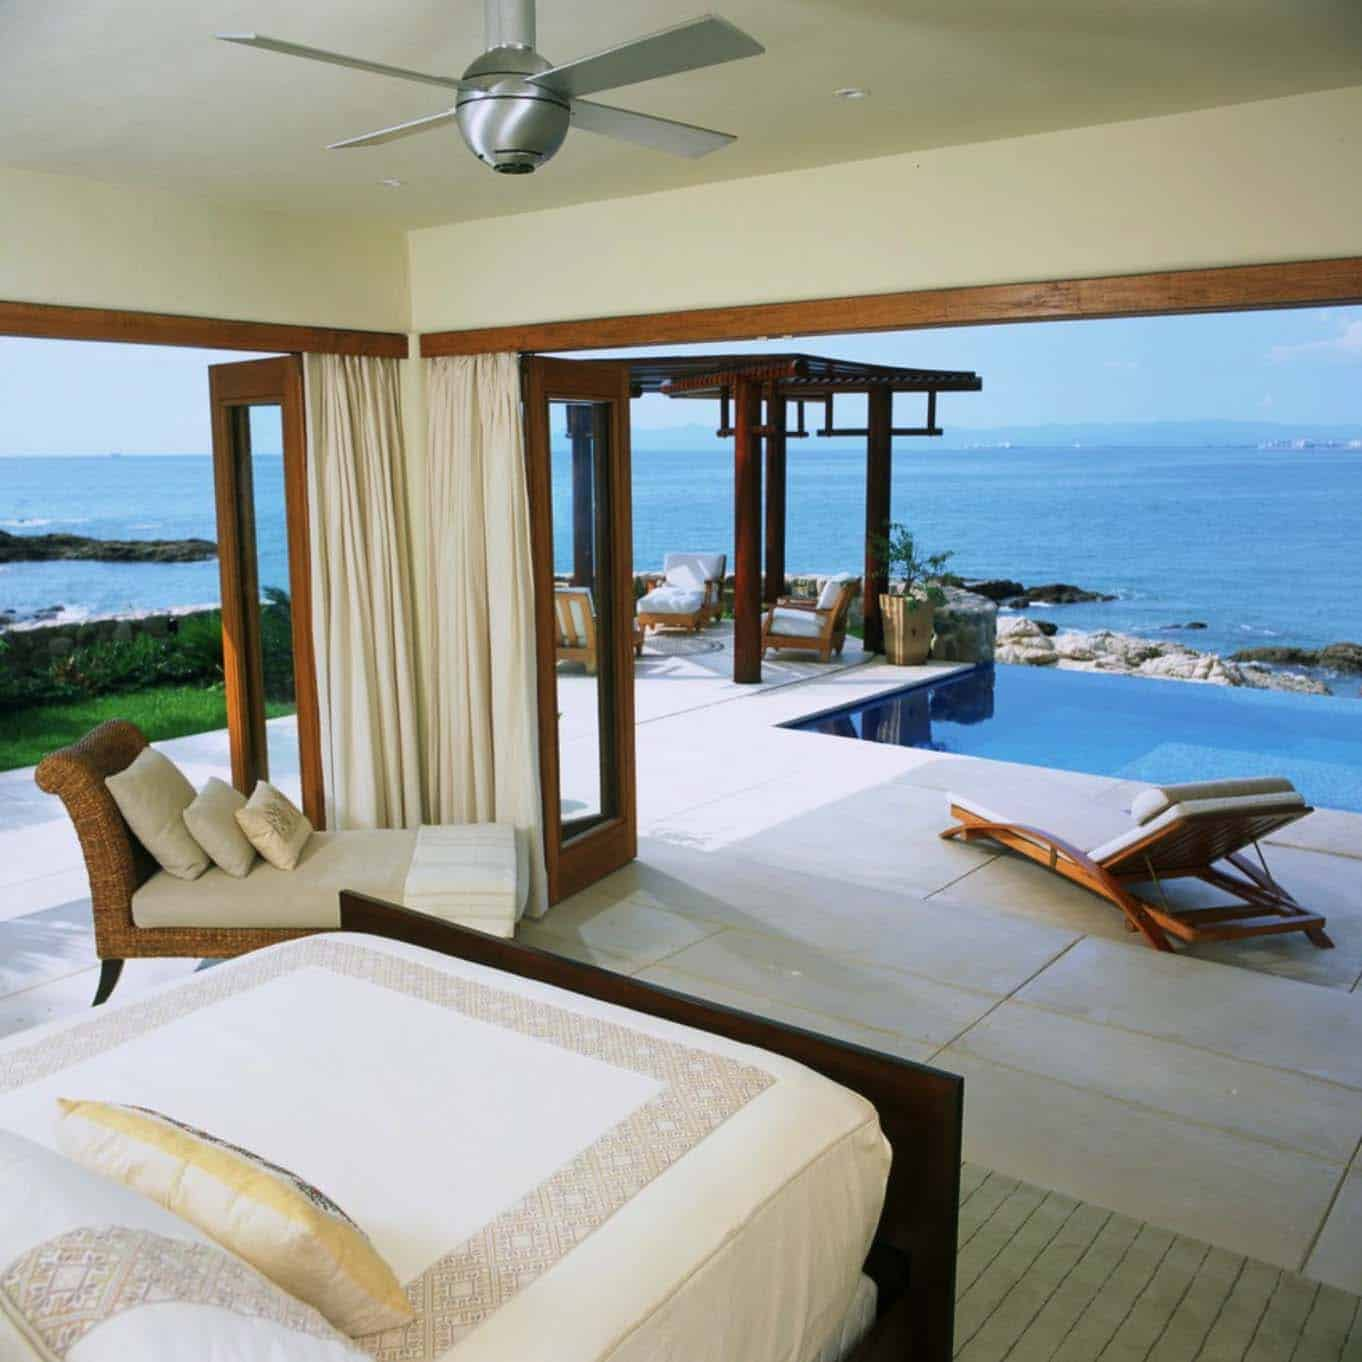 Bedroom With Ocean Views-11-1 Kindesign